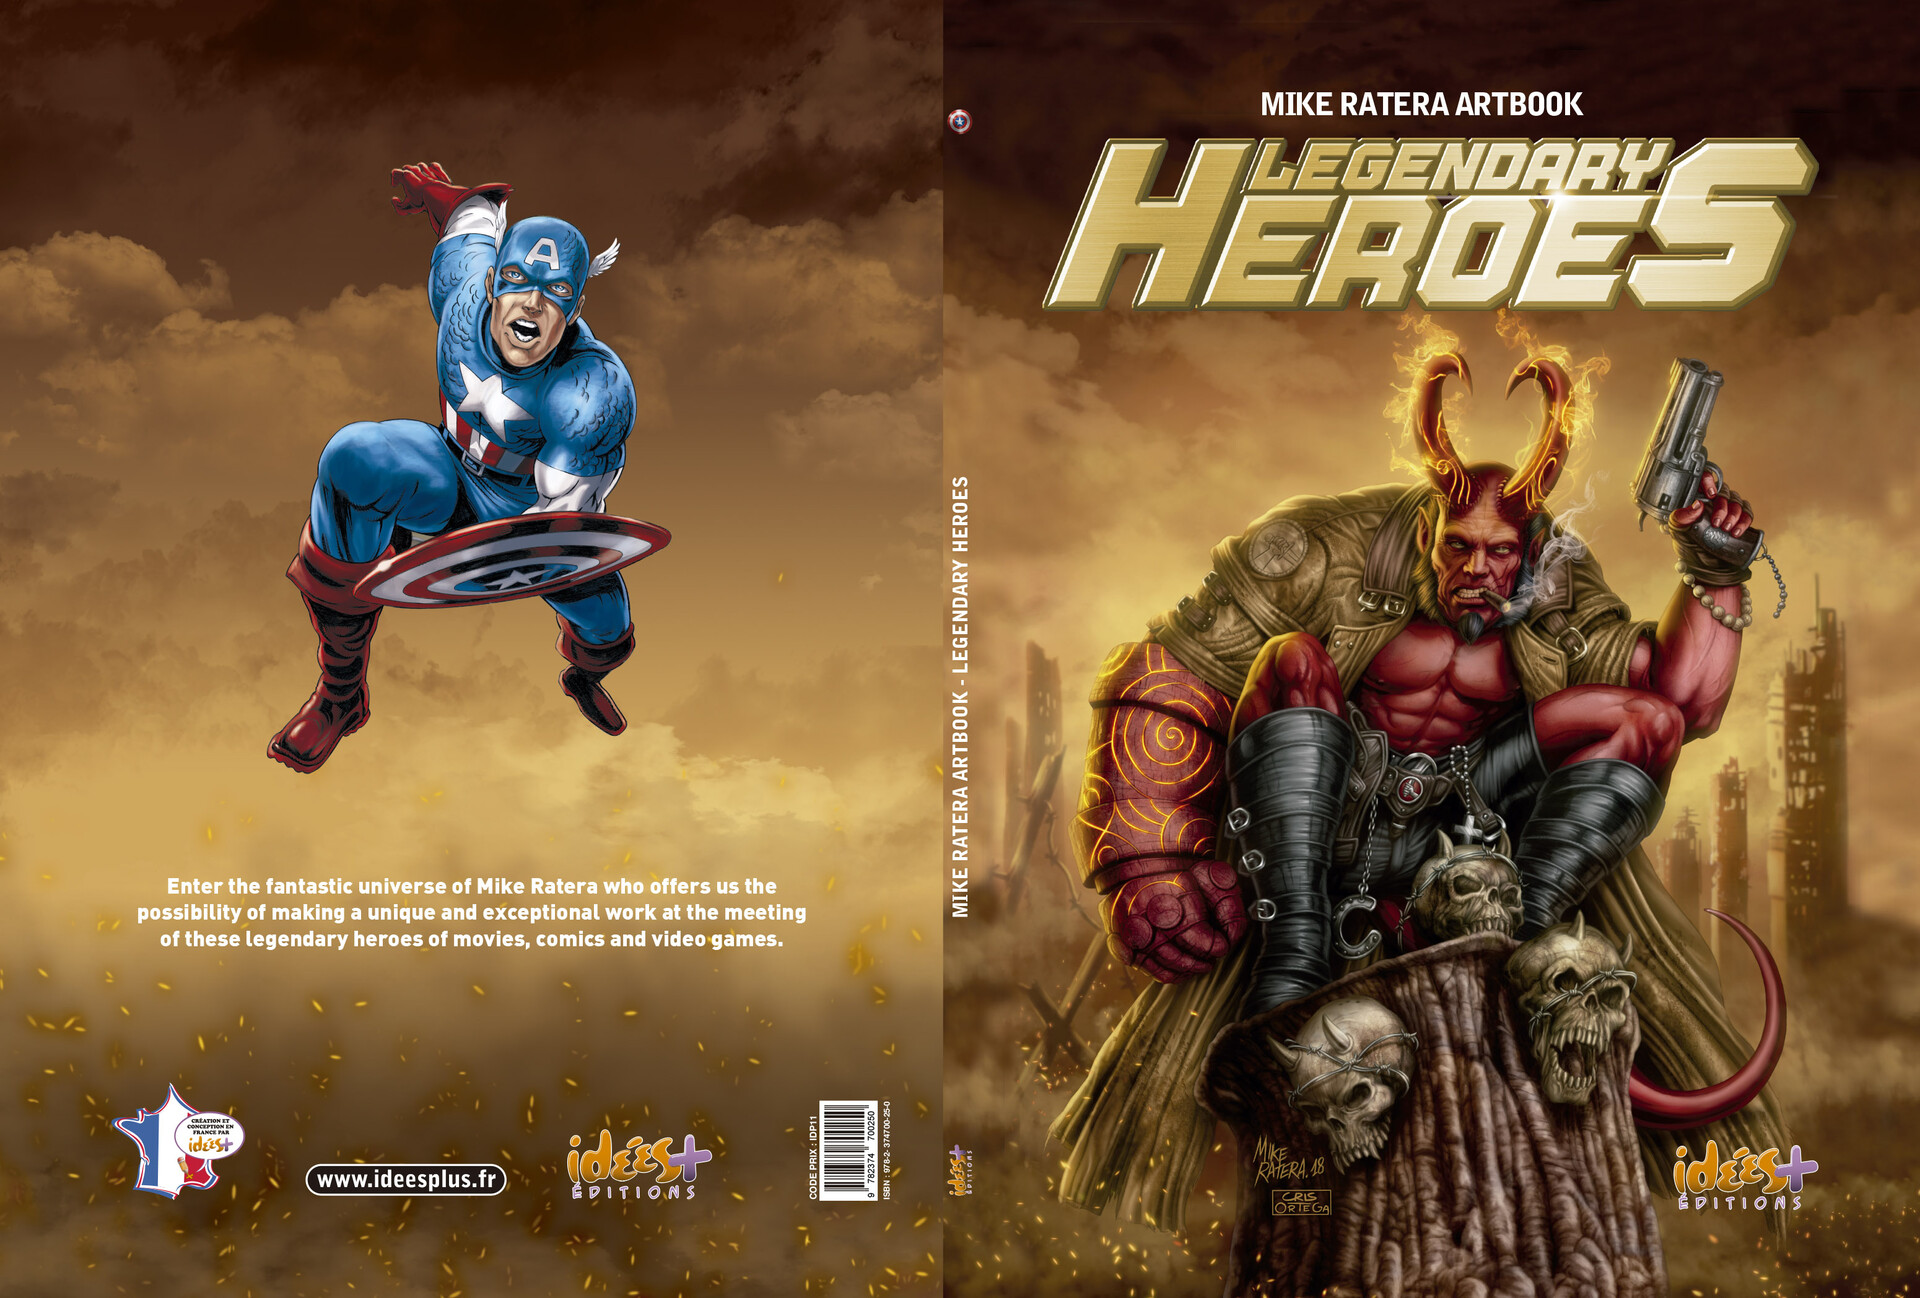 Mike ratera legendary heroes ac cover c1 c4